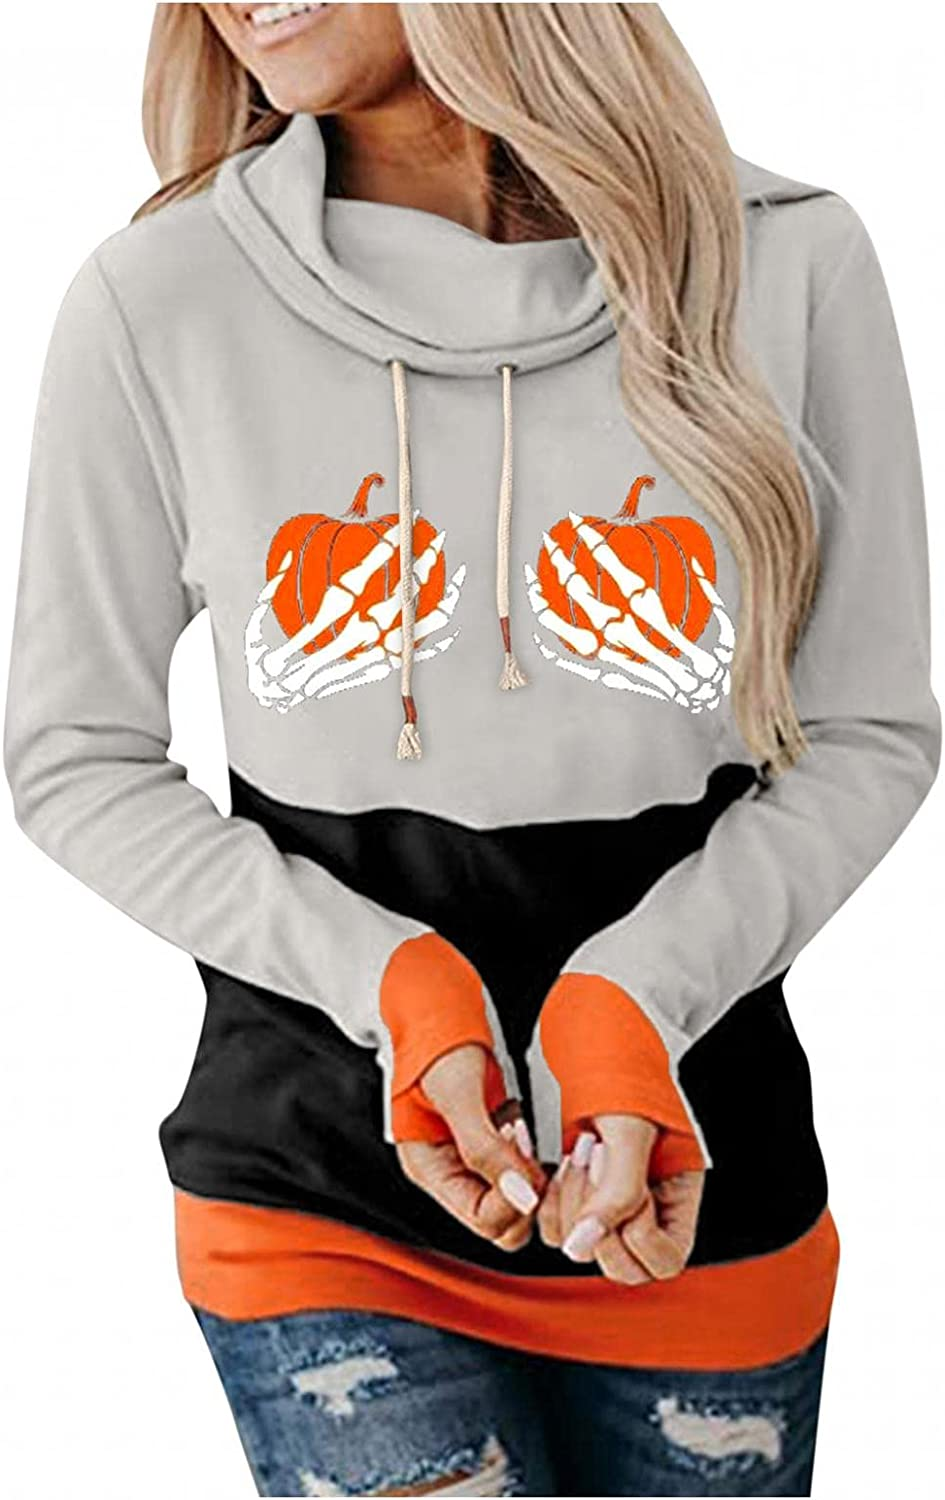 UOCUFY Hoodies for Women, Womens Halloween Cute Graphic Color Block Sweatshirts Pullover Casual Long Sleeve Hoodies Tops